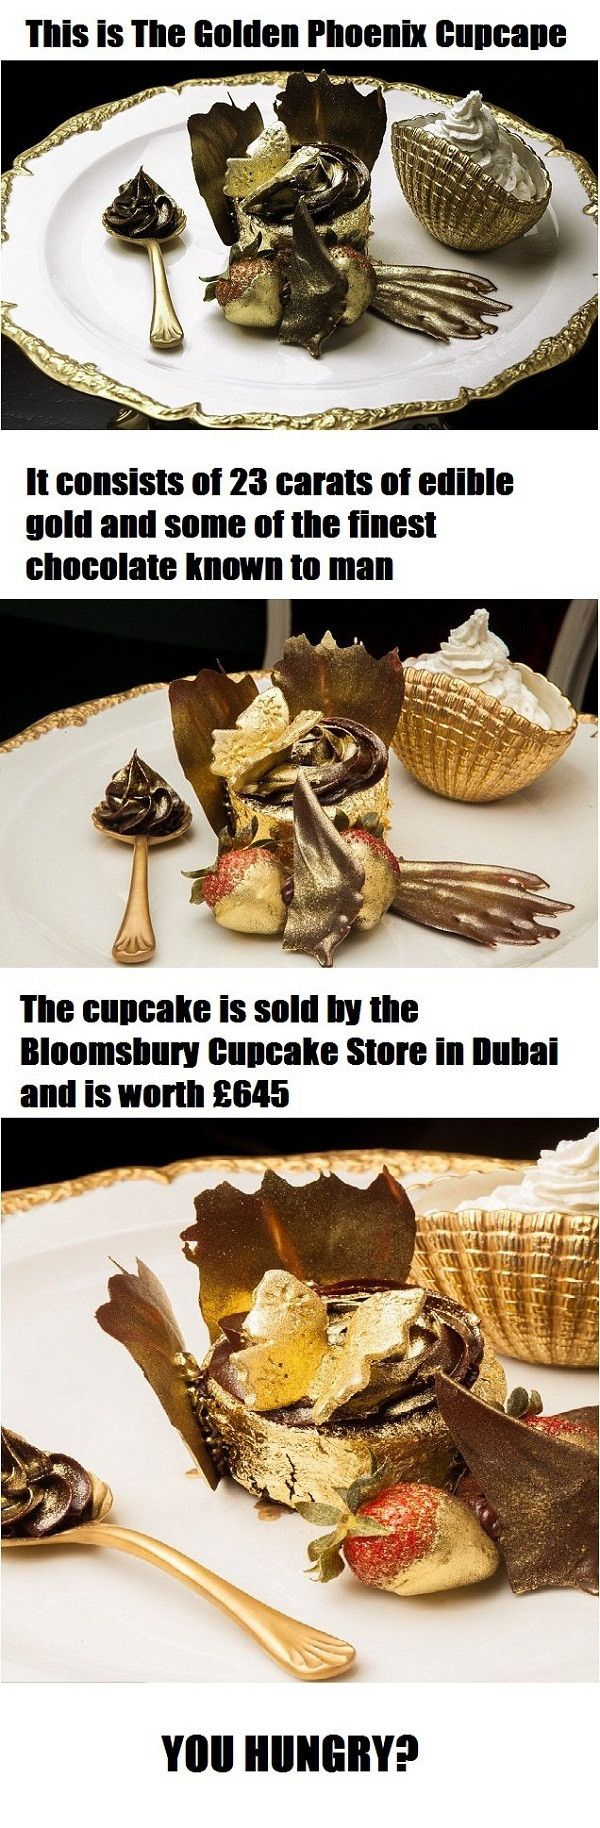 Golden Phonix Cupcake: World's Most Expensive Food- I will eat this one day!